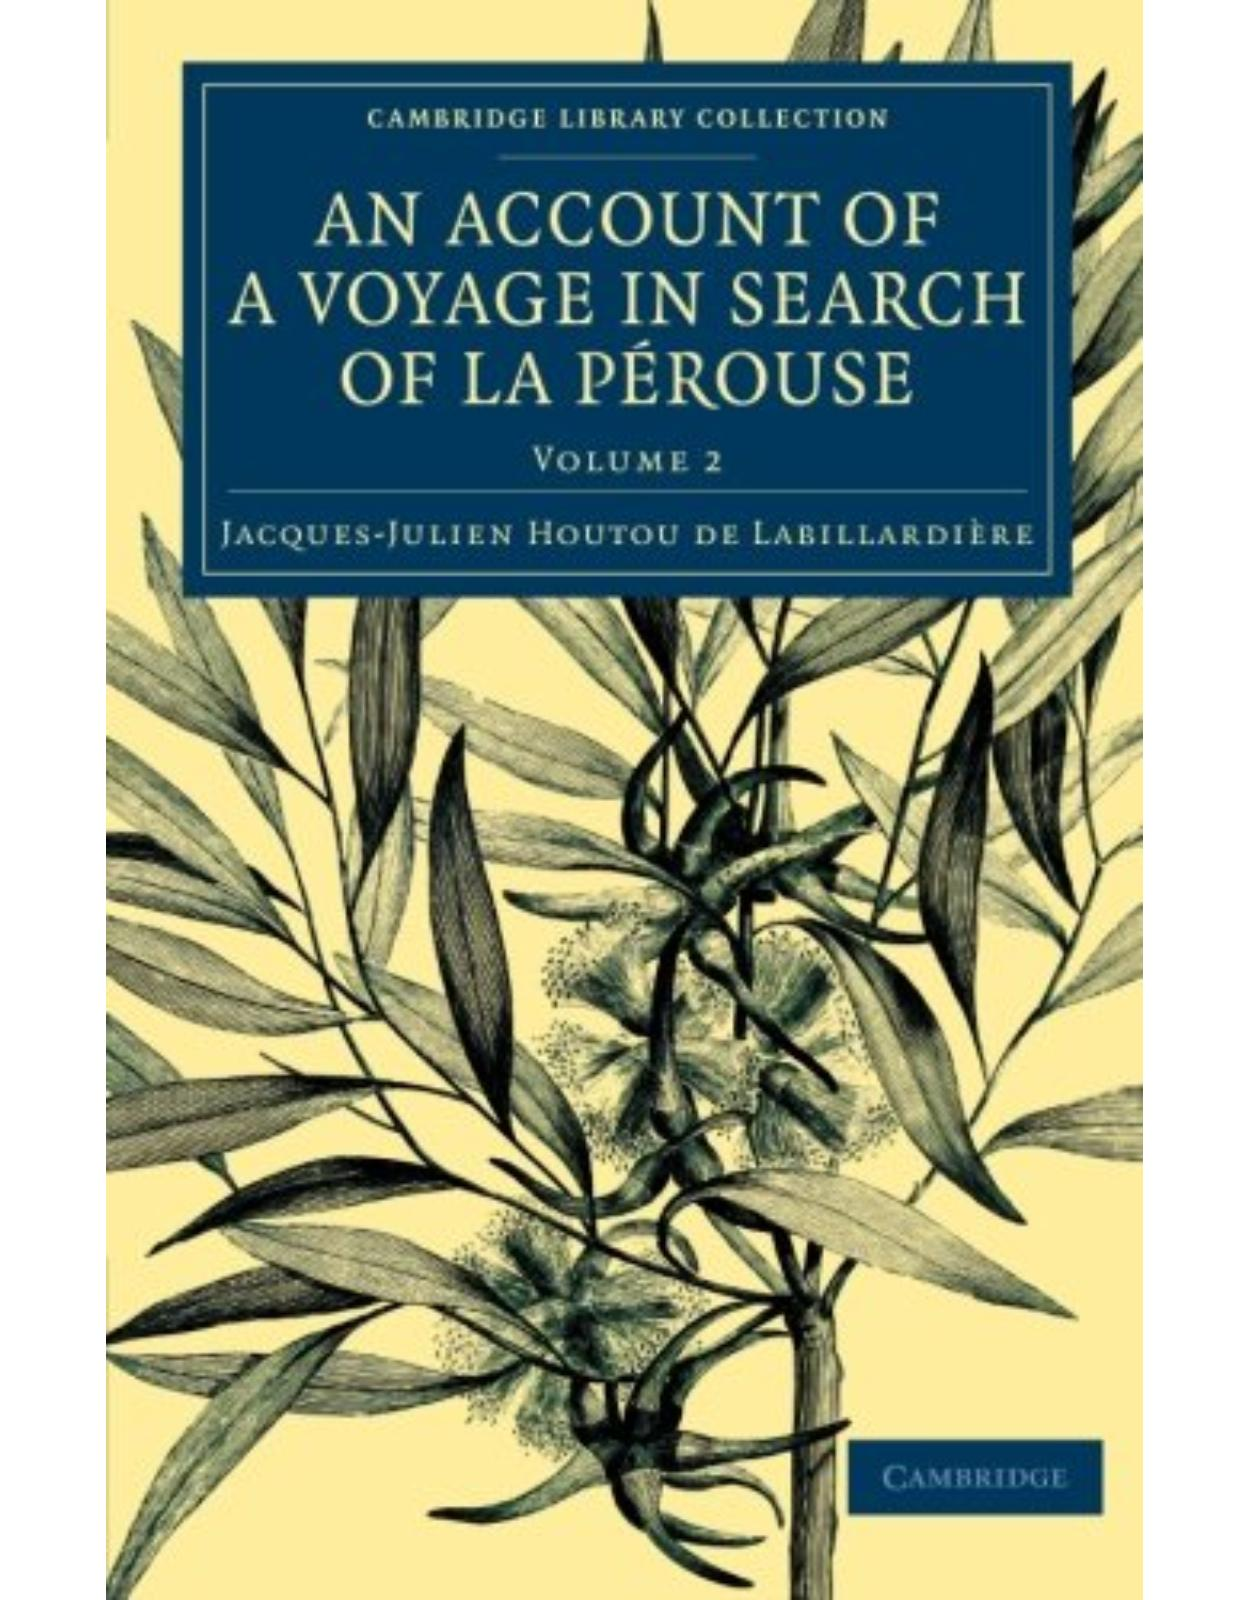 An Account of a Voyage in Search of La Pérouse 2 Volume Set: An Account of a Voyage in Search ofLa Pérouse: Undertaken by Order of the Constituent ... Library Collection - Maritime Exploration)